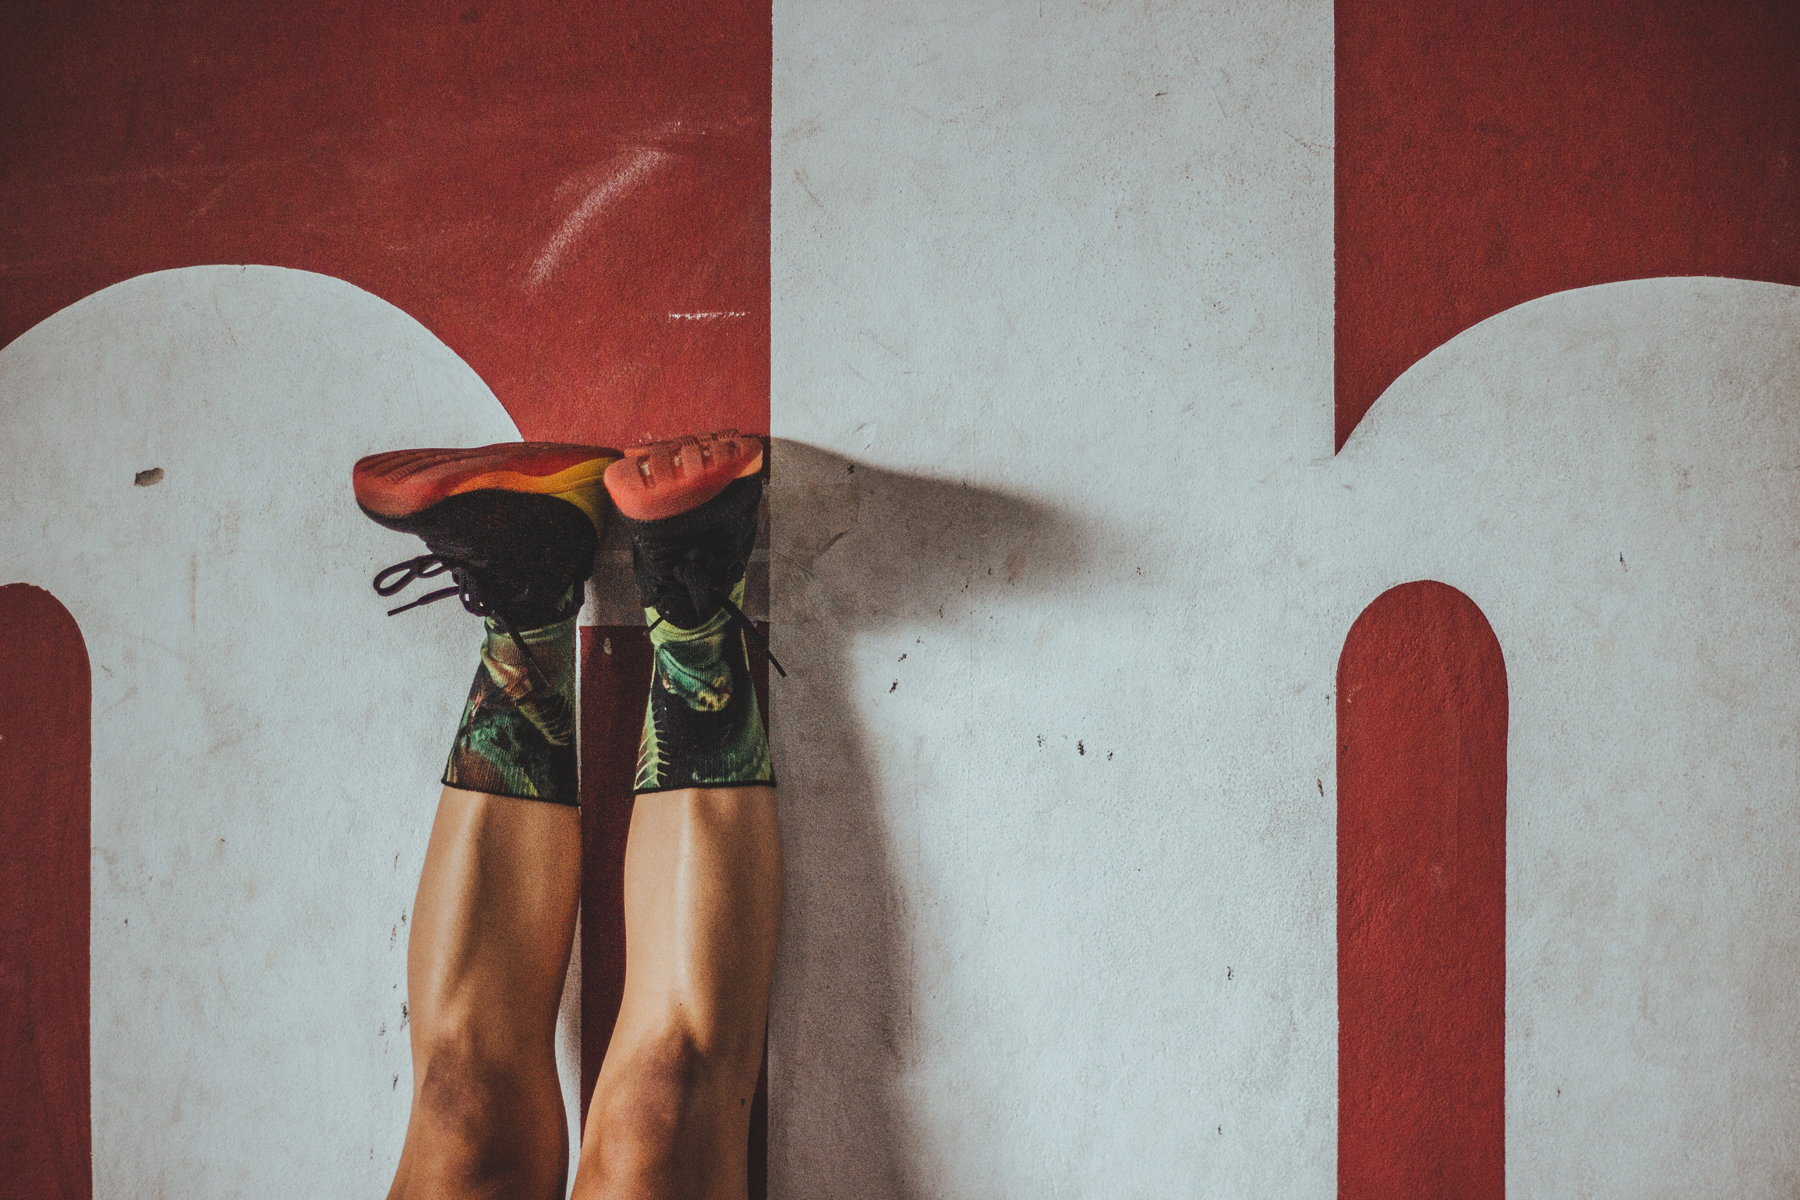 How Handstand Push Ups Changed My Life